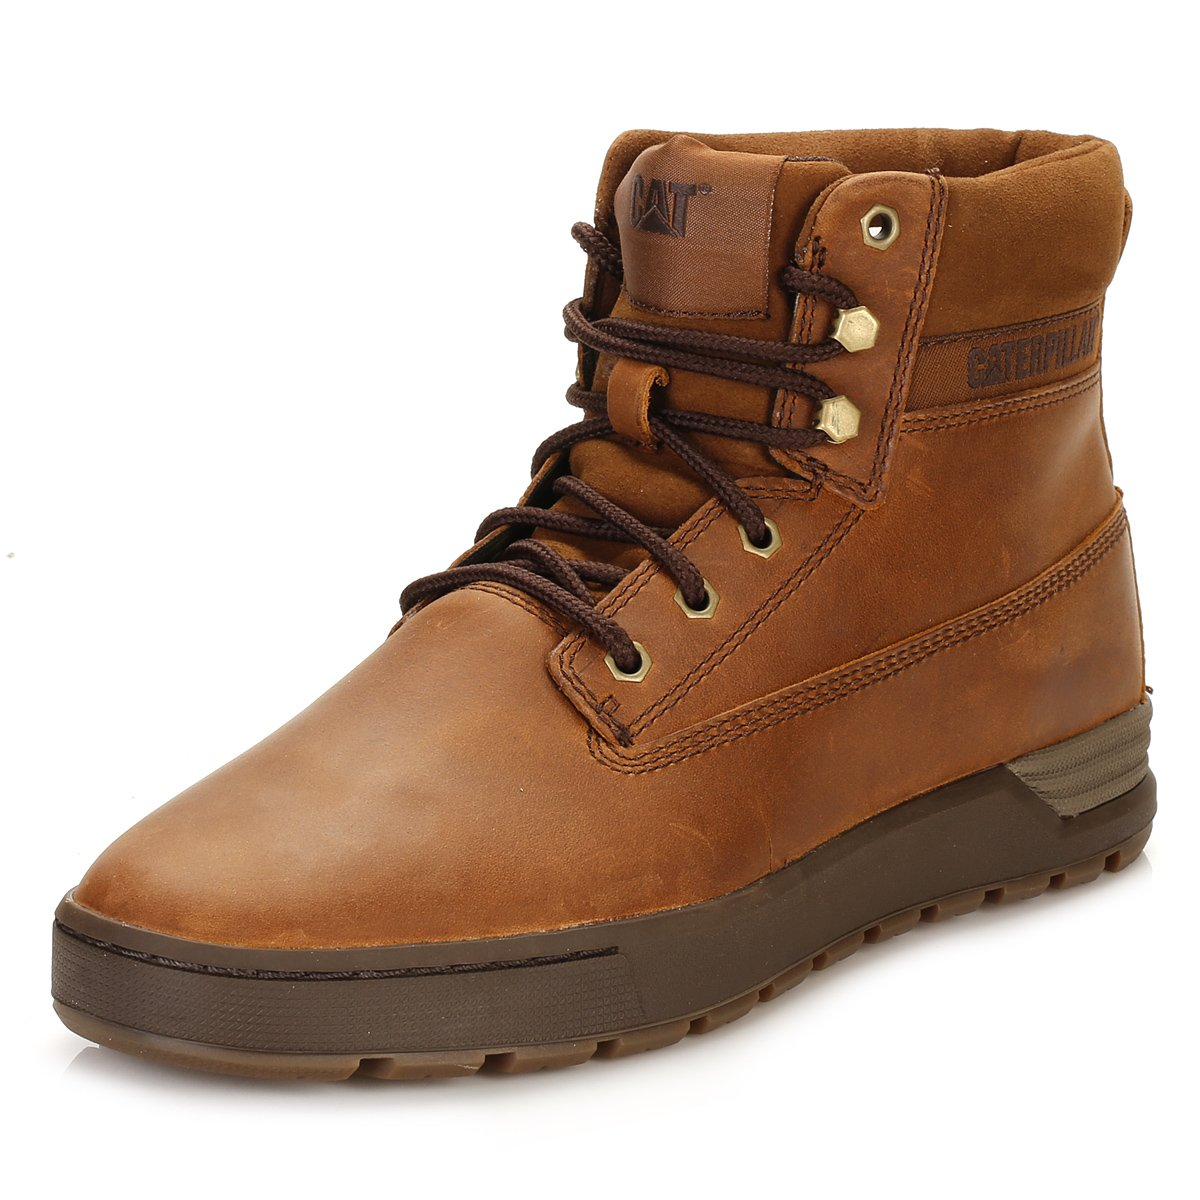 b6953d61b5c Caterpillar Mens Brown Ryker Boots: Amazon.co.uk: Shoes & Bags